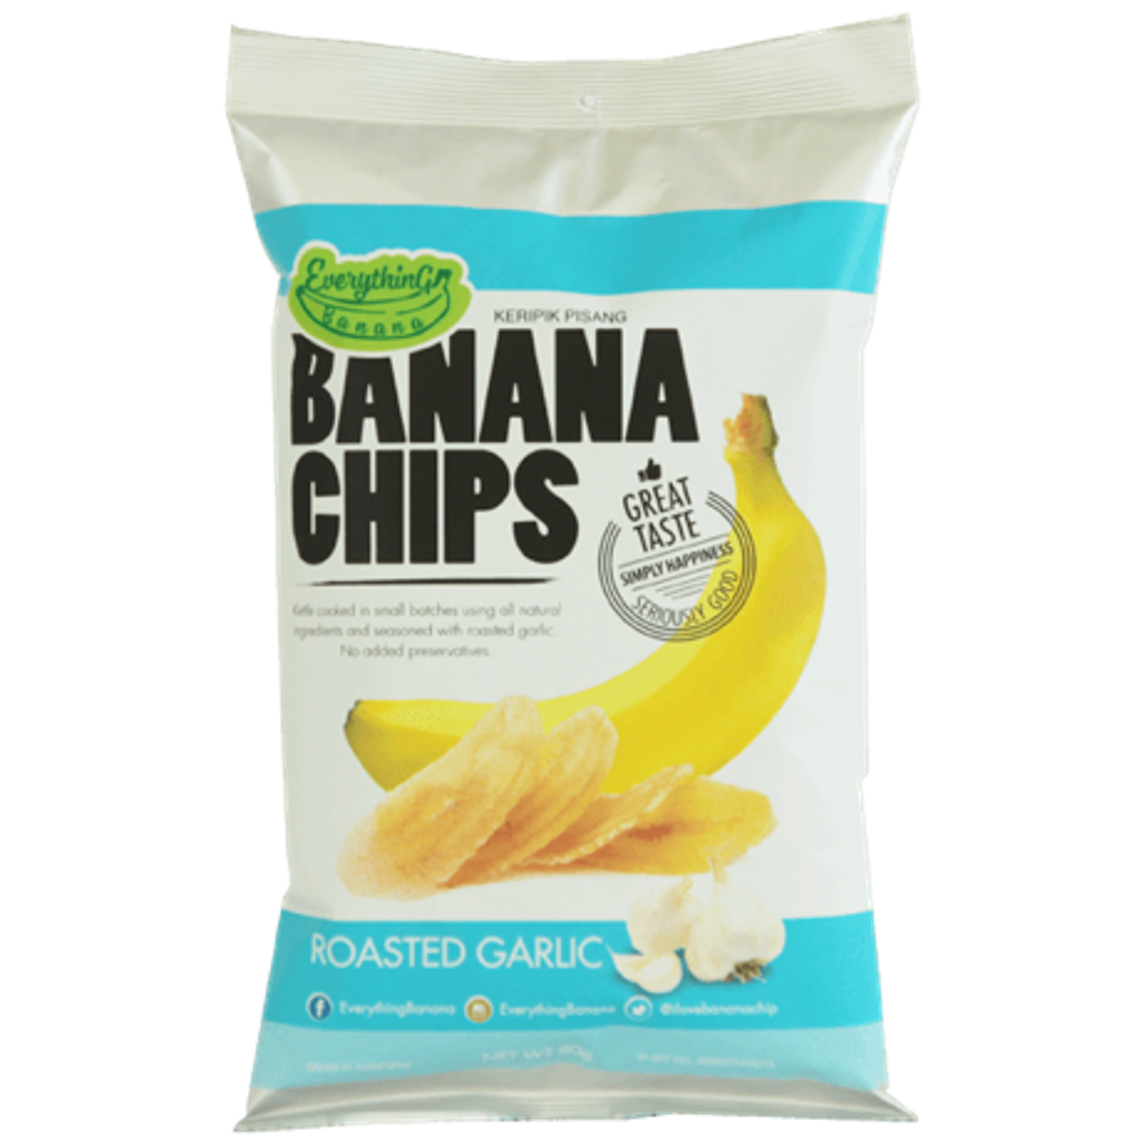 Everything Banana Chips - Roasted Garlic, 80g